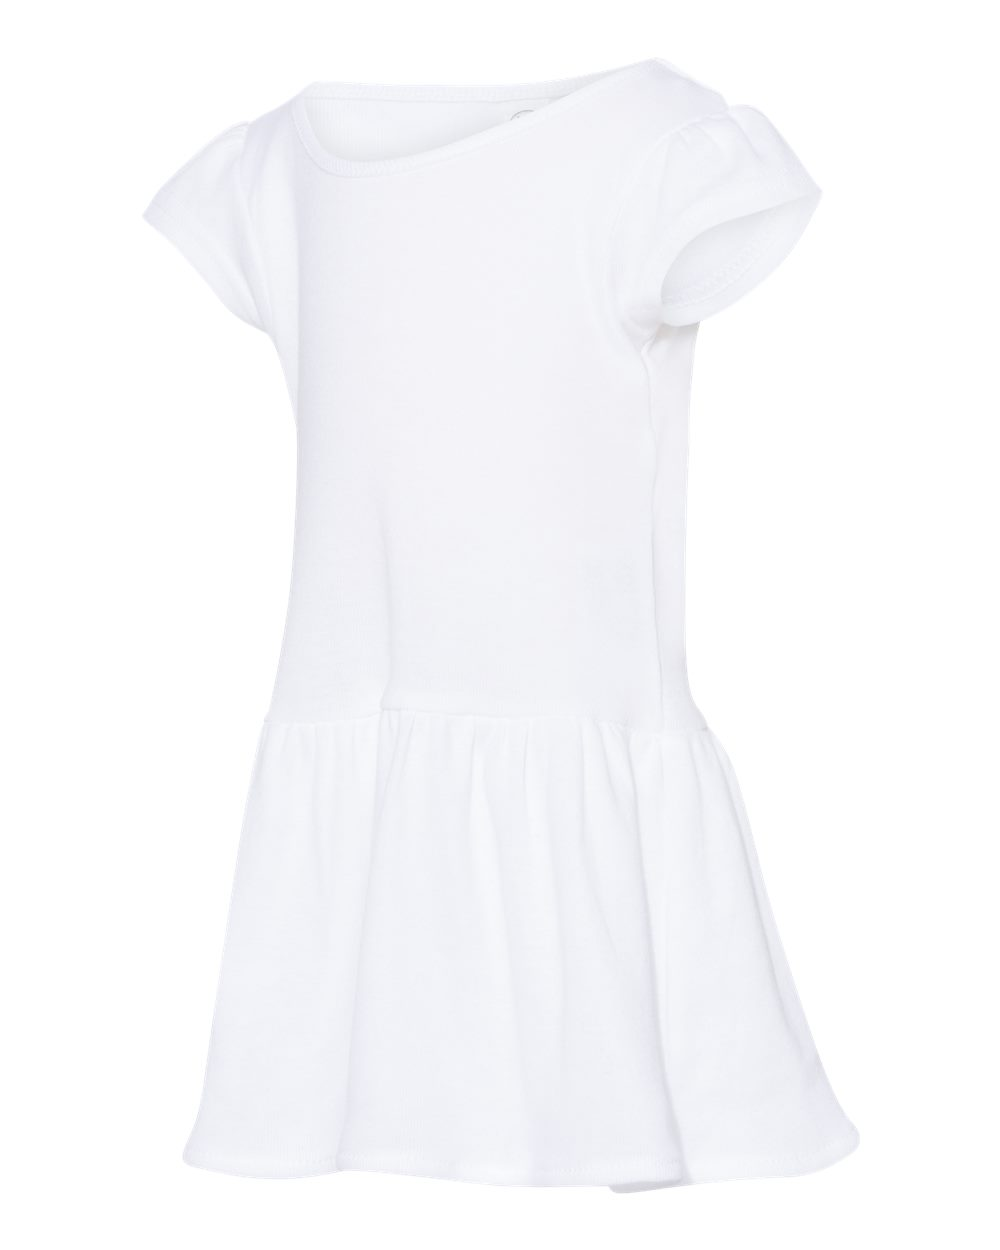 Rabbit Skin Infant Rib Dress 5320 White